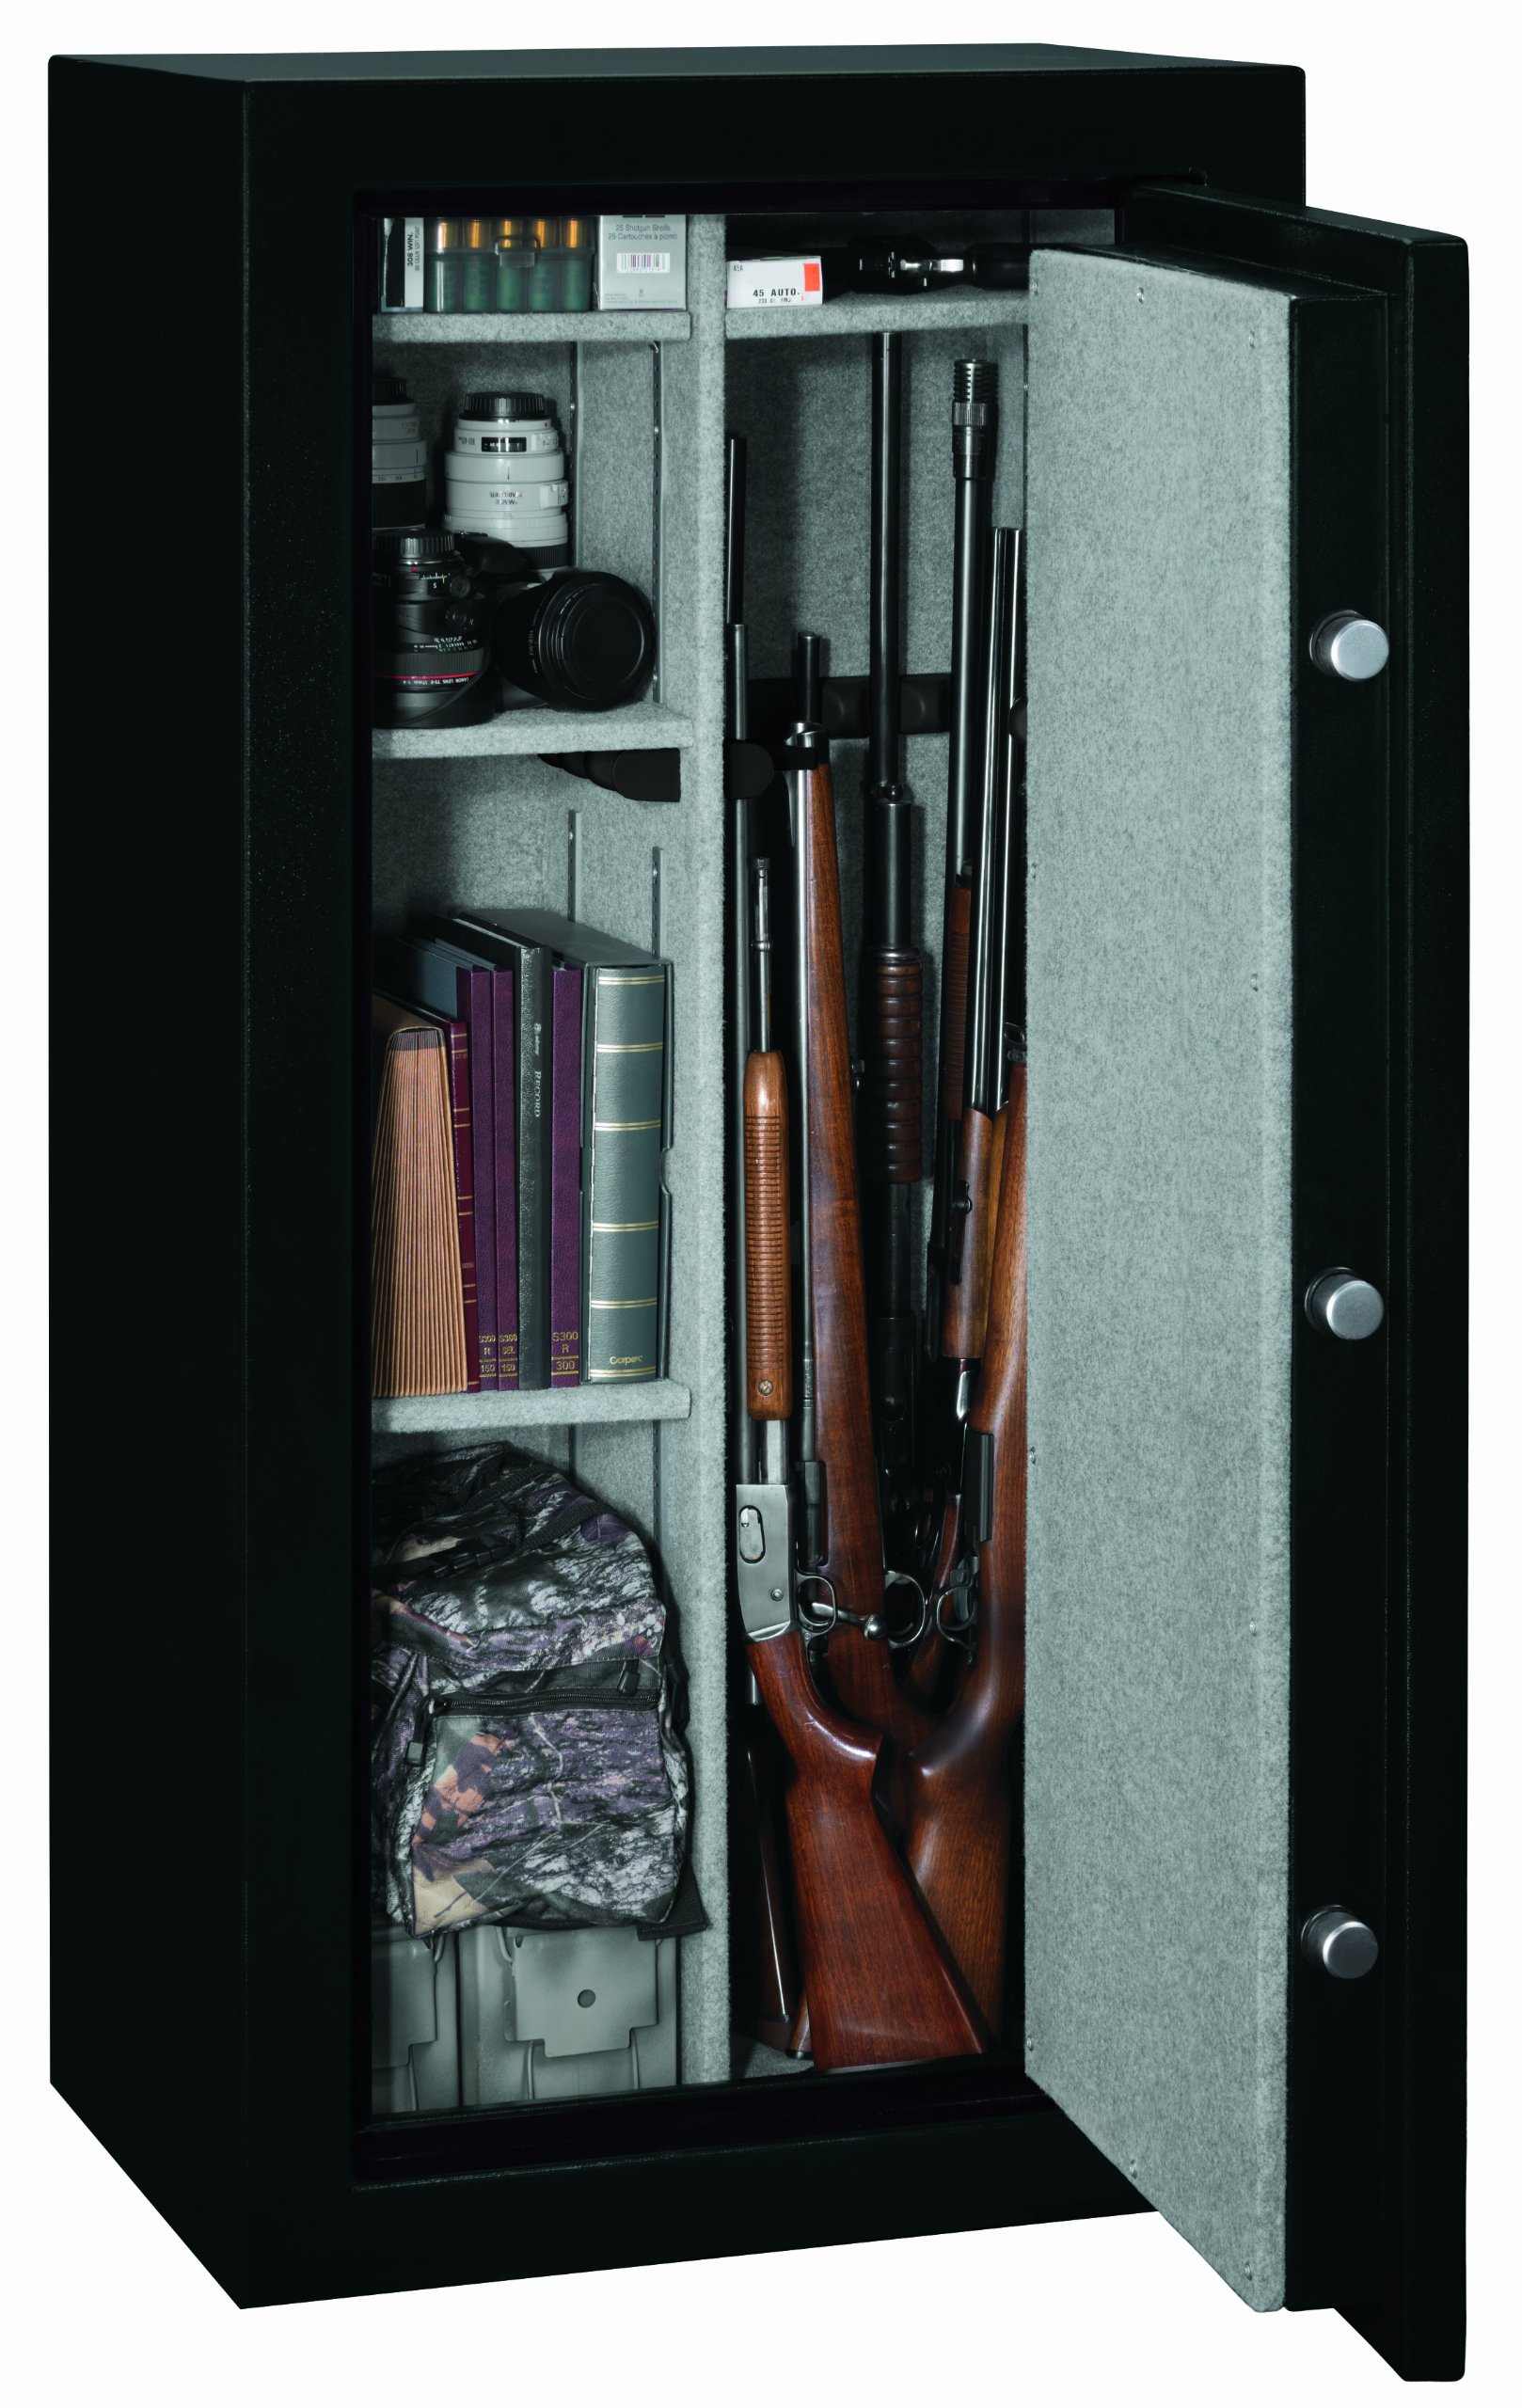 Stack-On FS-24-MB-E 24-Gun Fire Resistant Safe with Electronic Lock, Matte Black by Stack-On (Image #2)